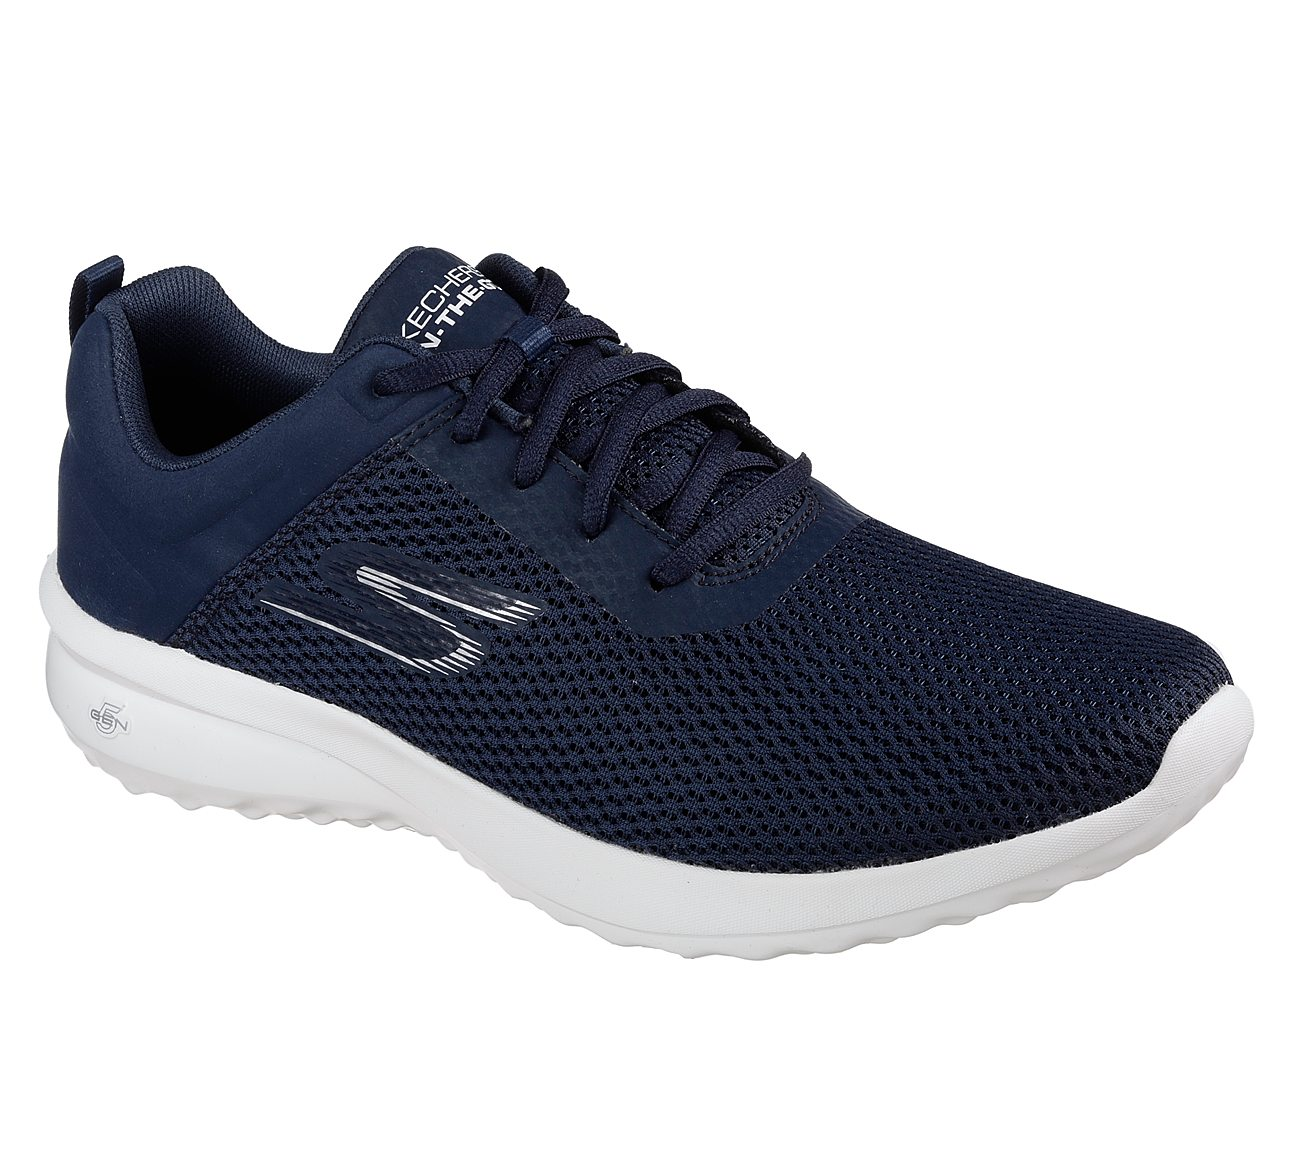 Skechers On the GO City 3.0 - Dynamics